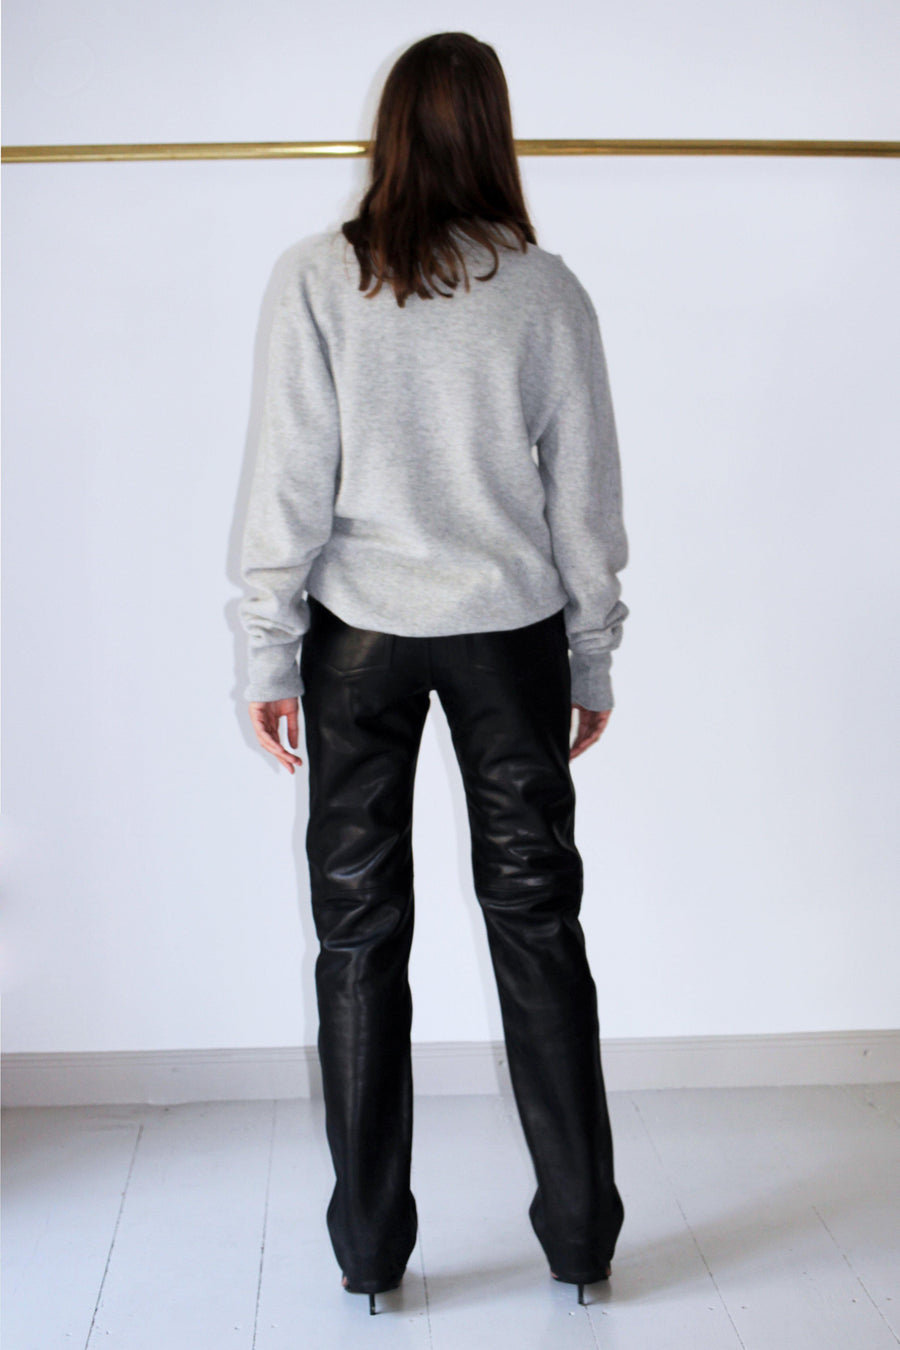 ACNE STUDIOS Leather Pants - The Good Store Berlin